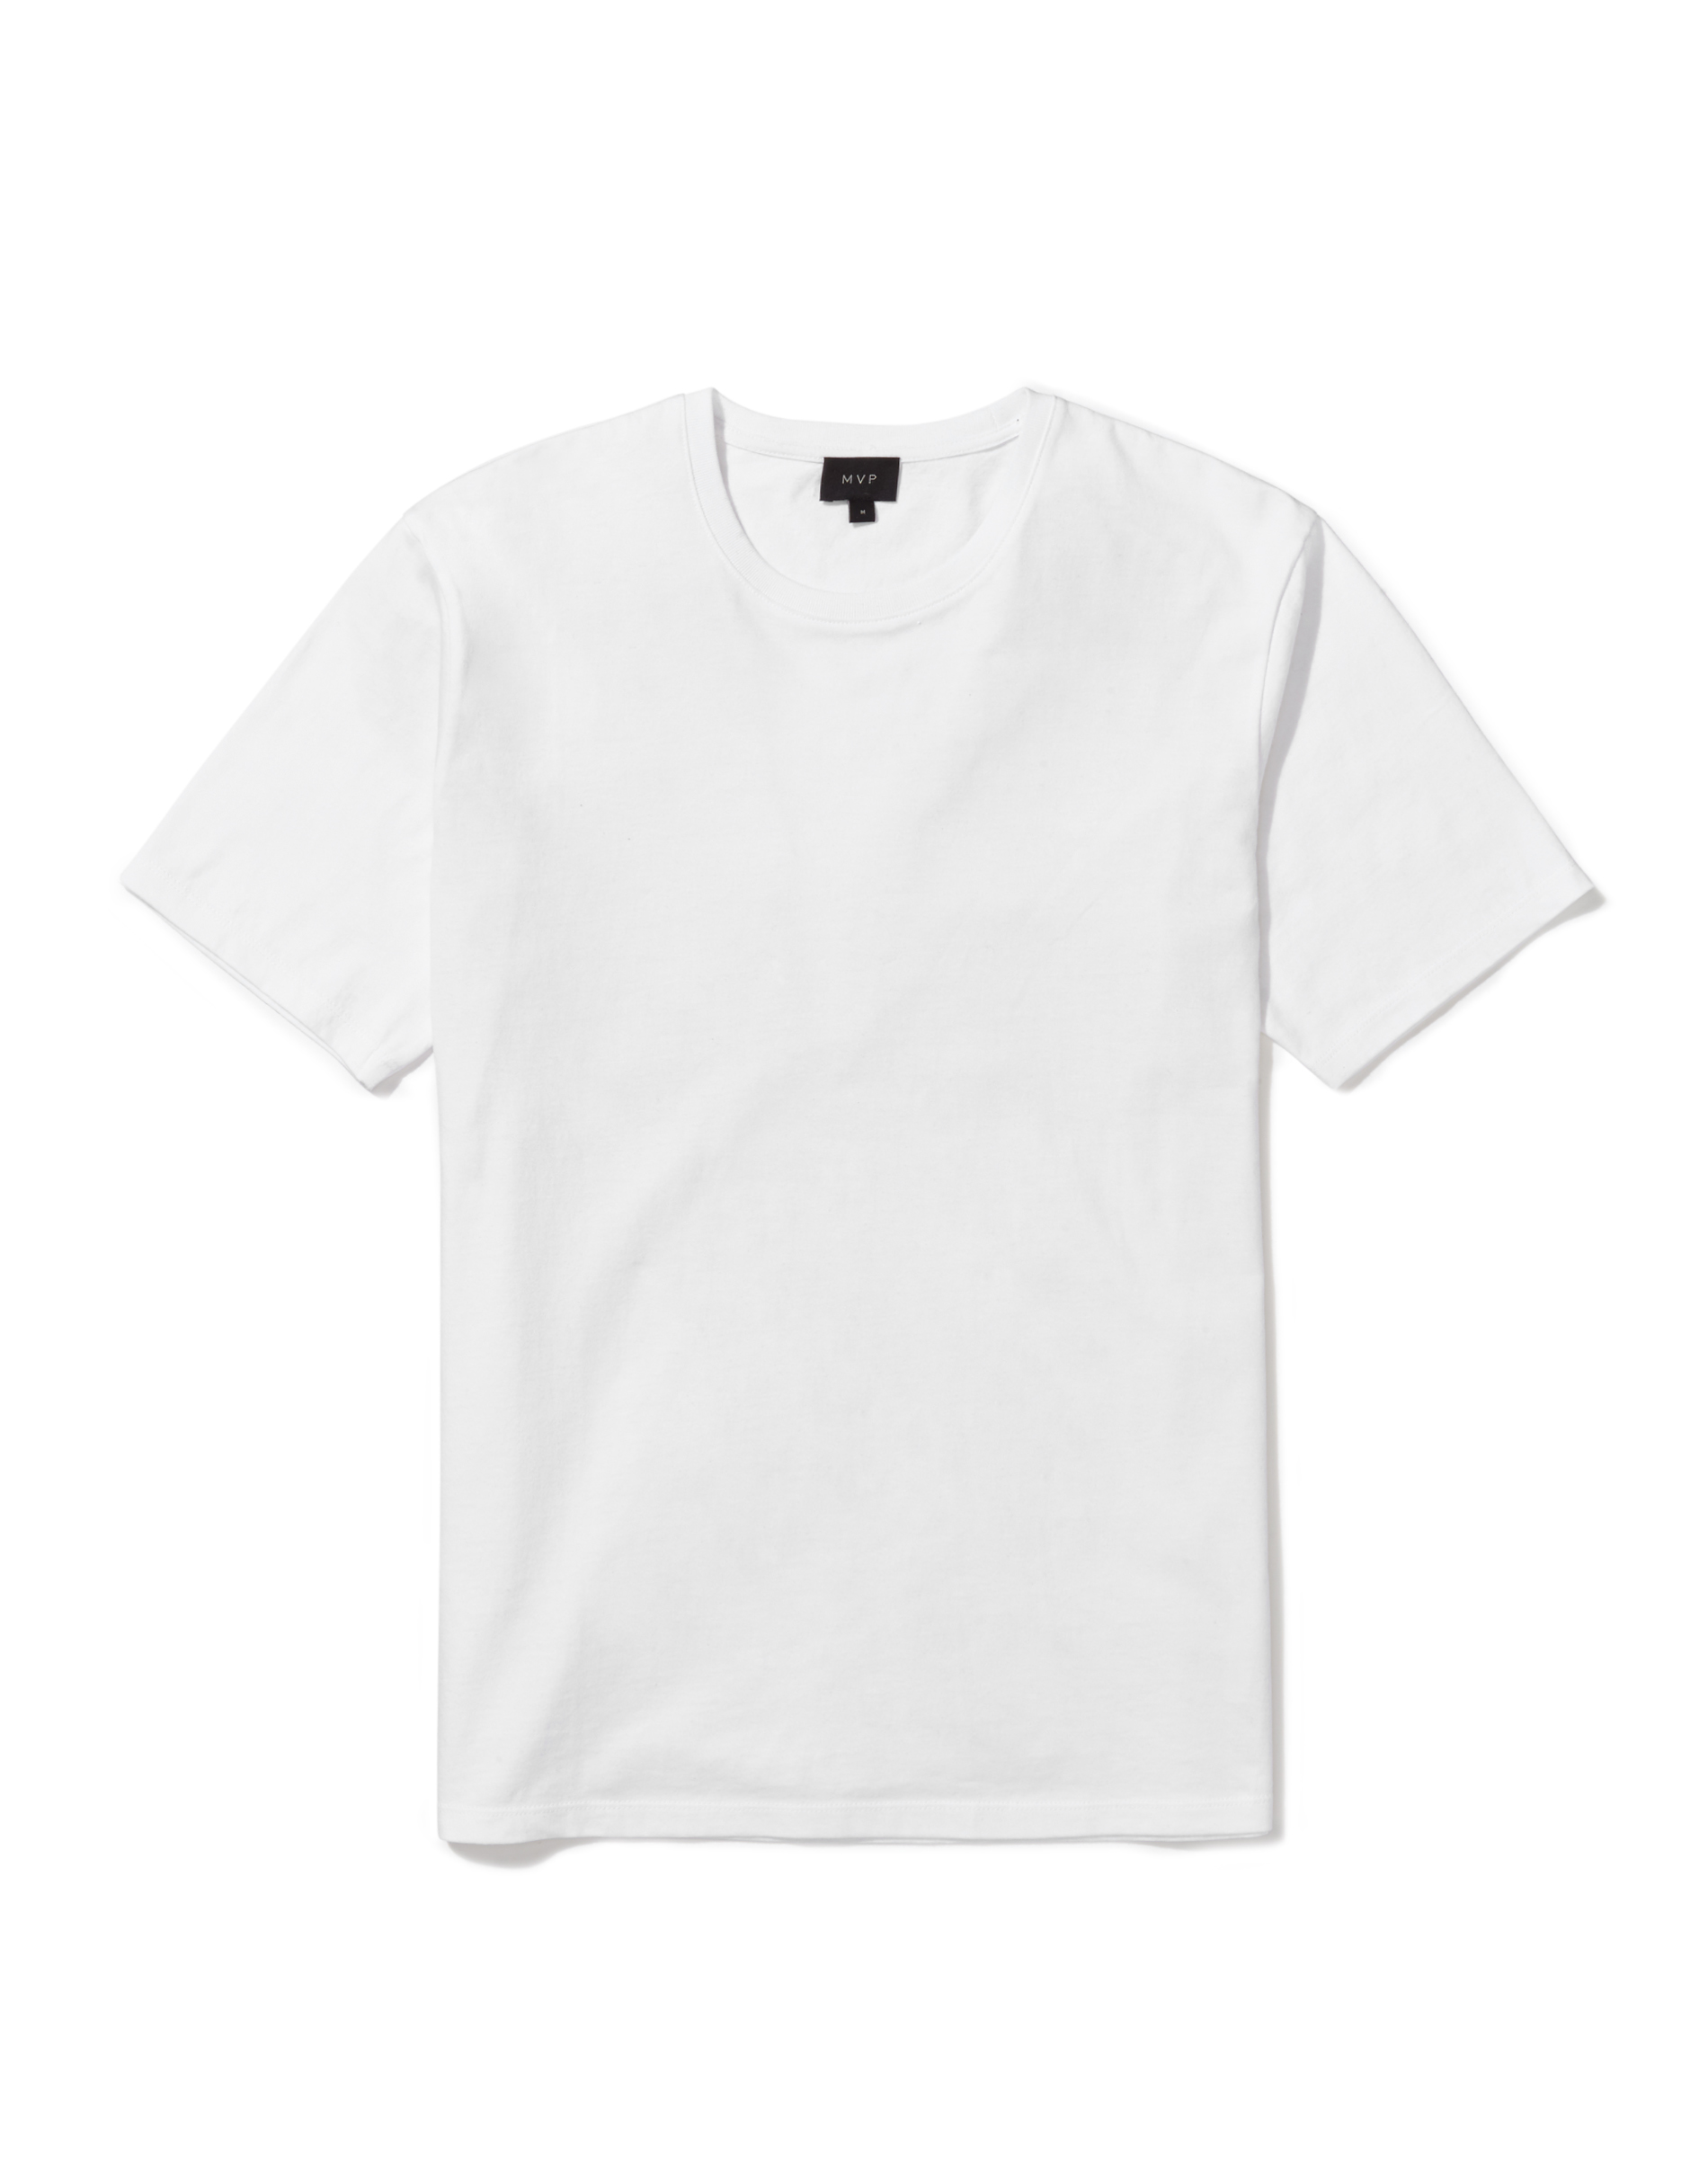 MVP Ashfield Crew Neck T-Shirt - White